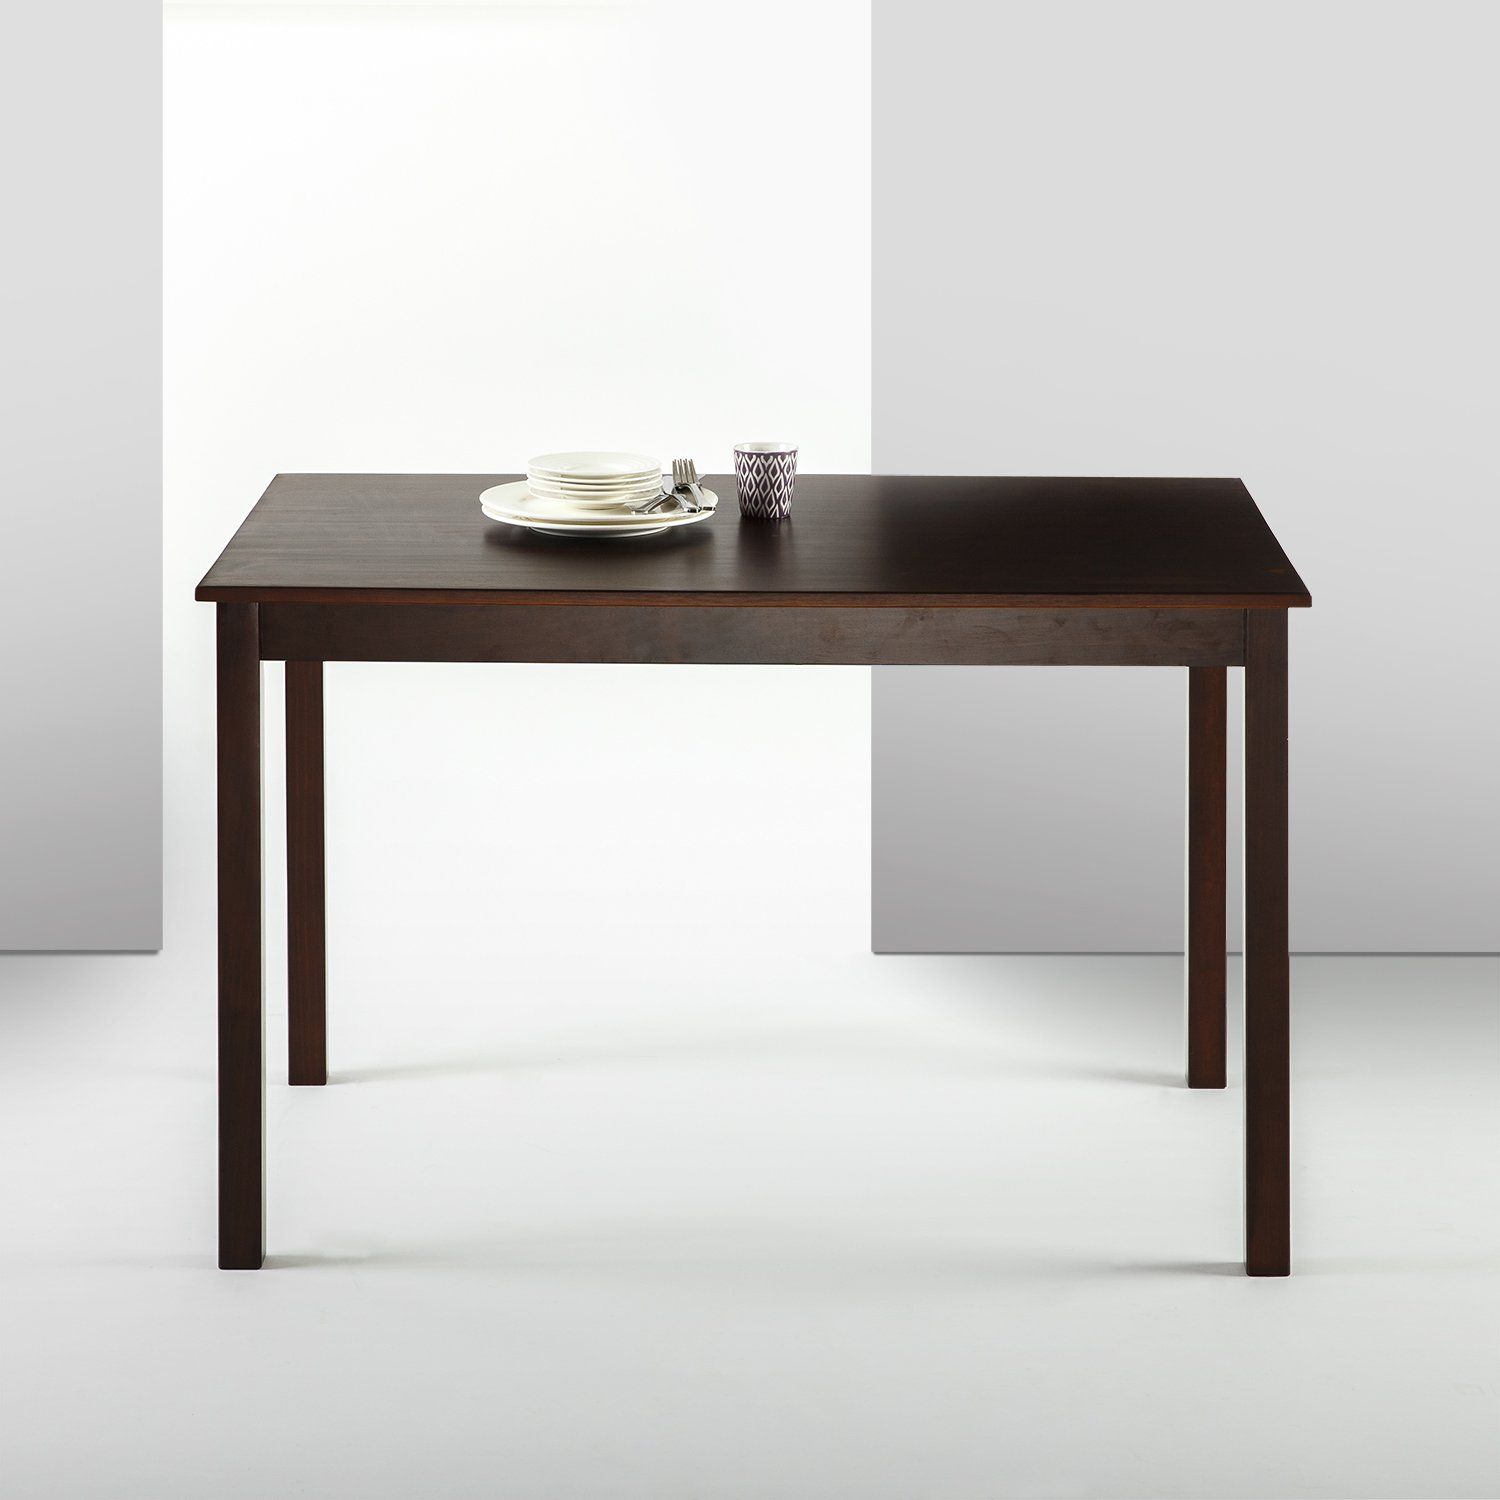 Zinus Juliet Espresso Wood Dining Table / Table Only by Zinus